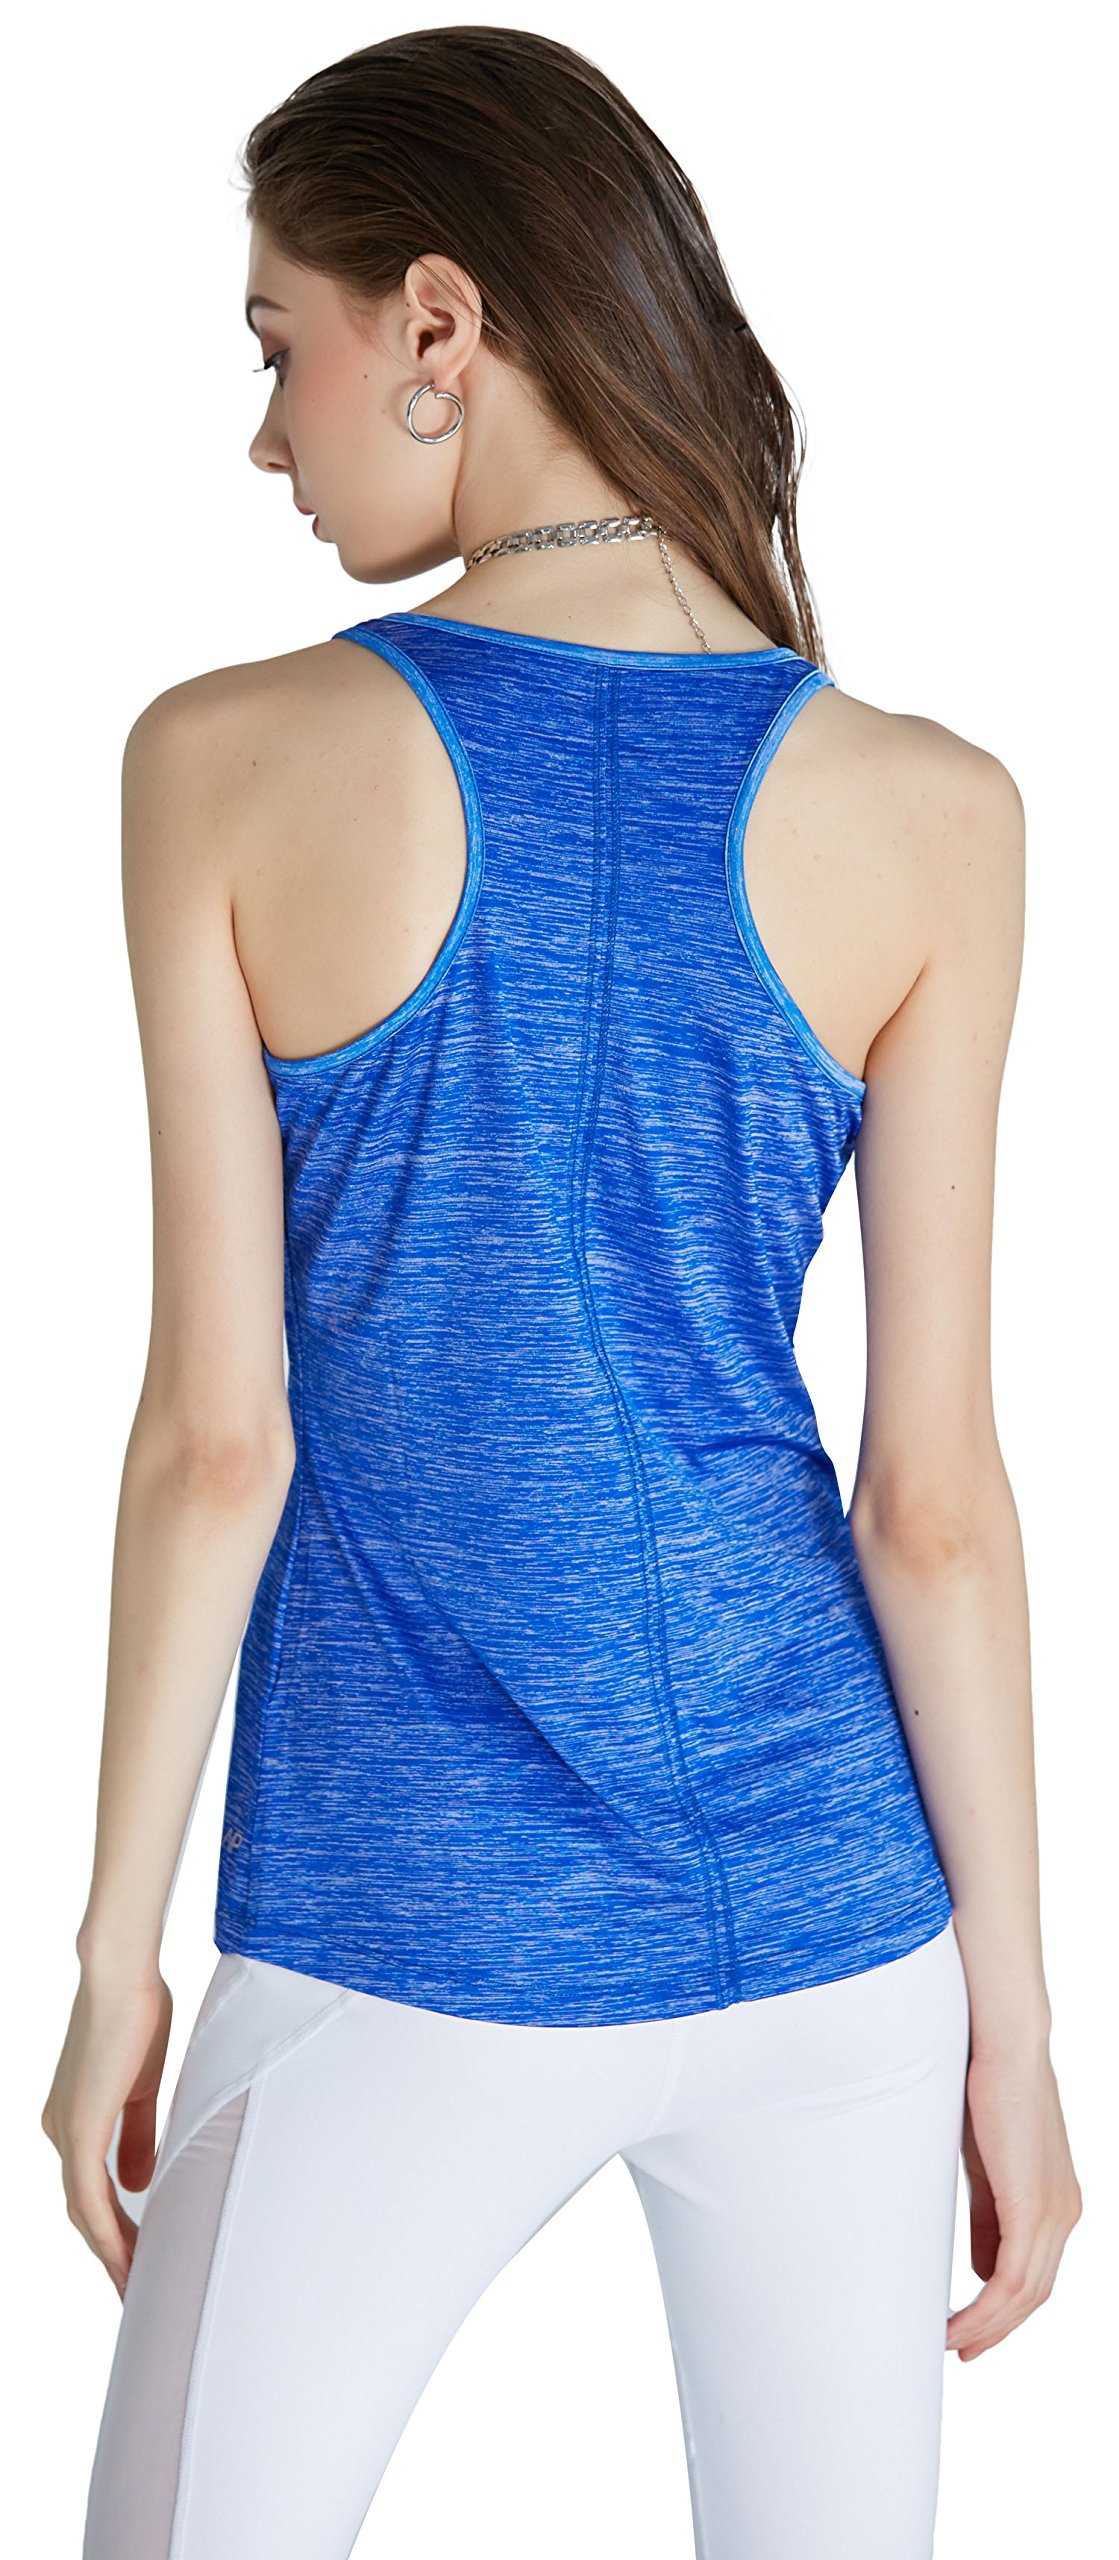 SPECIAL MAGIC Women\'s Active Sleeveless Racerback Lightweight Yoga Camisole Flowy Tank Top Royal Blue M